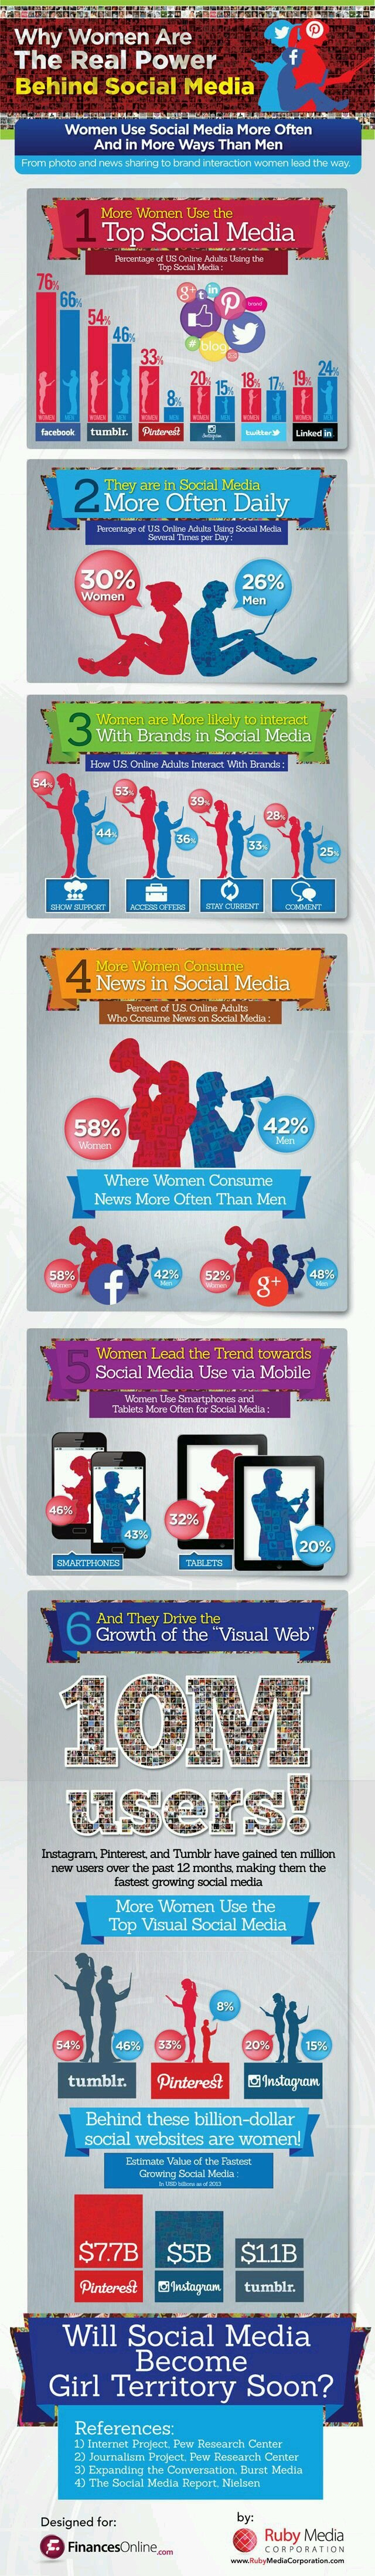 Why women are the real power behind social media #Infographic